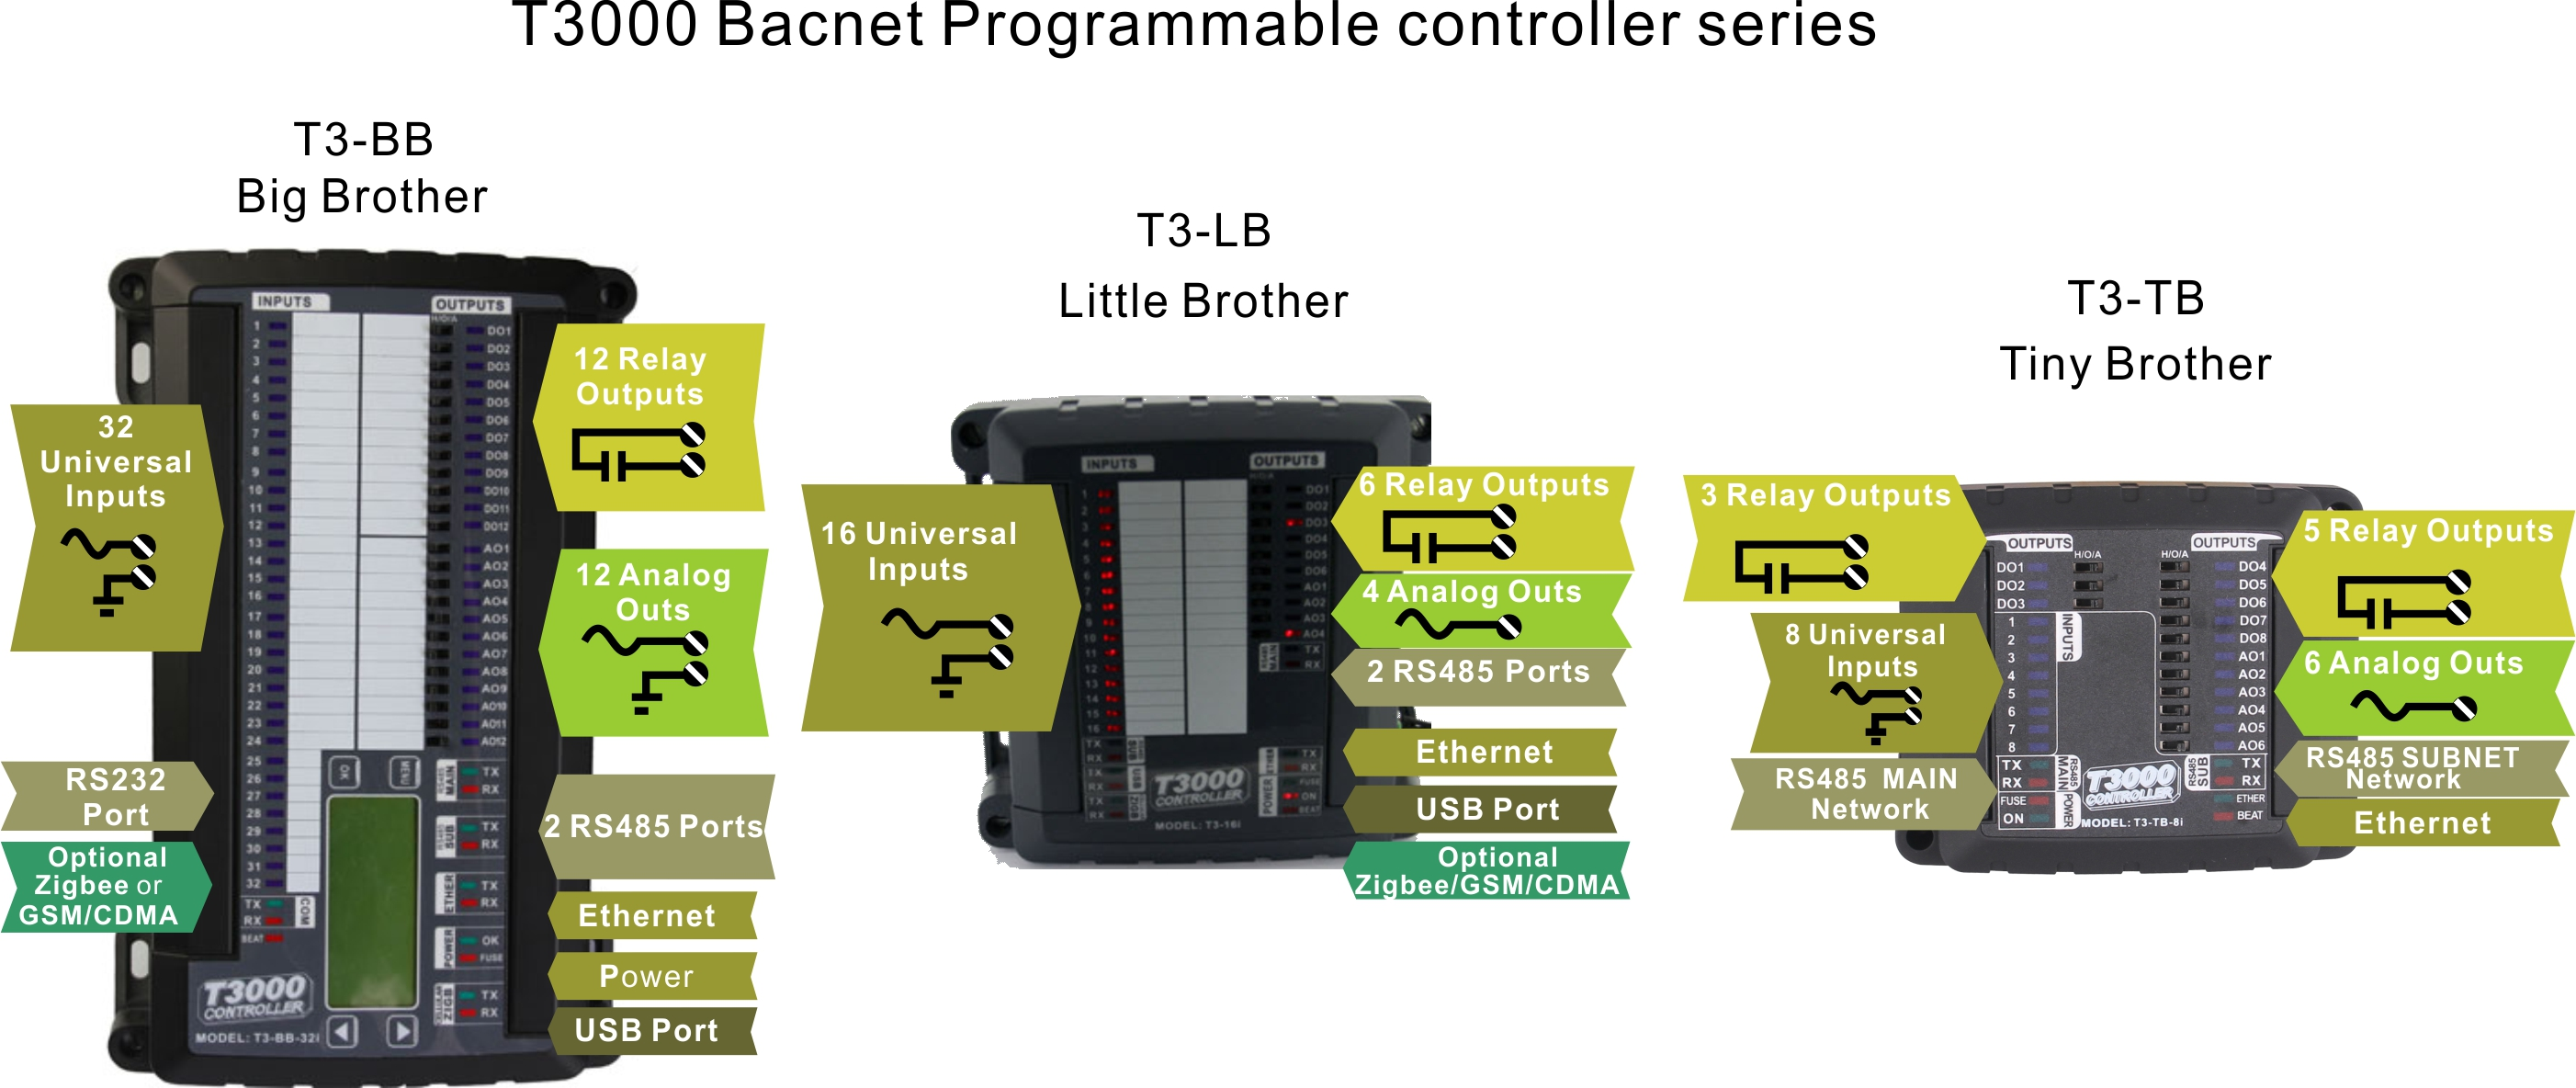 Bacnet Programmable Controller Bravo Controls Wiring 3 Series